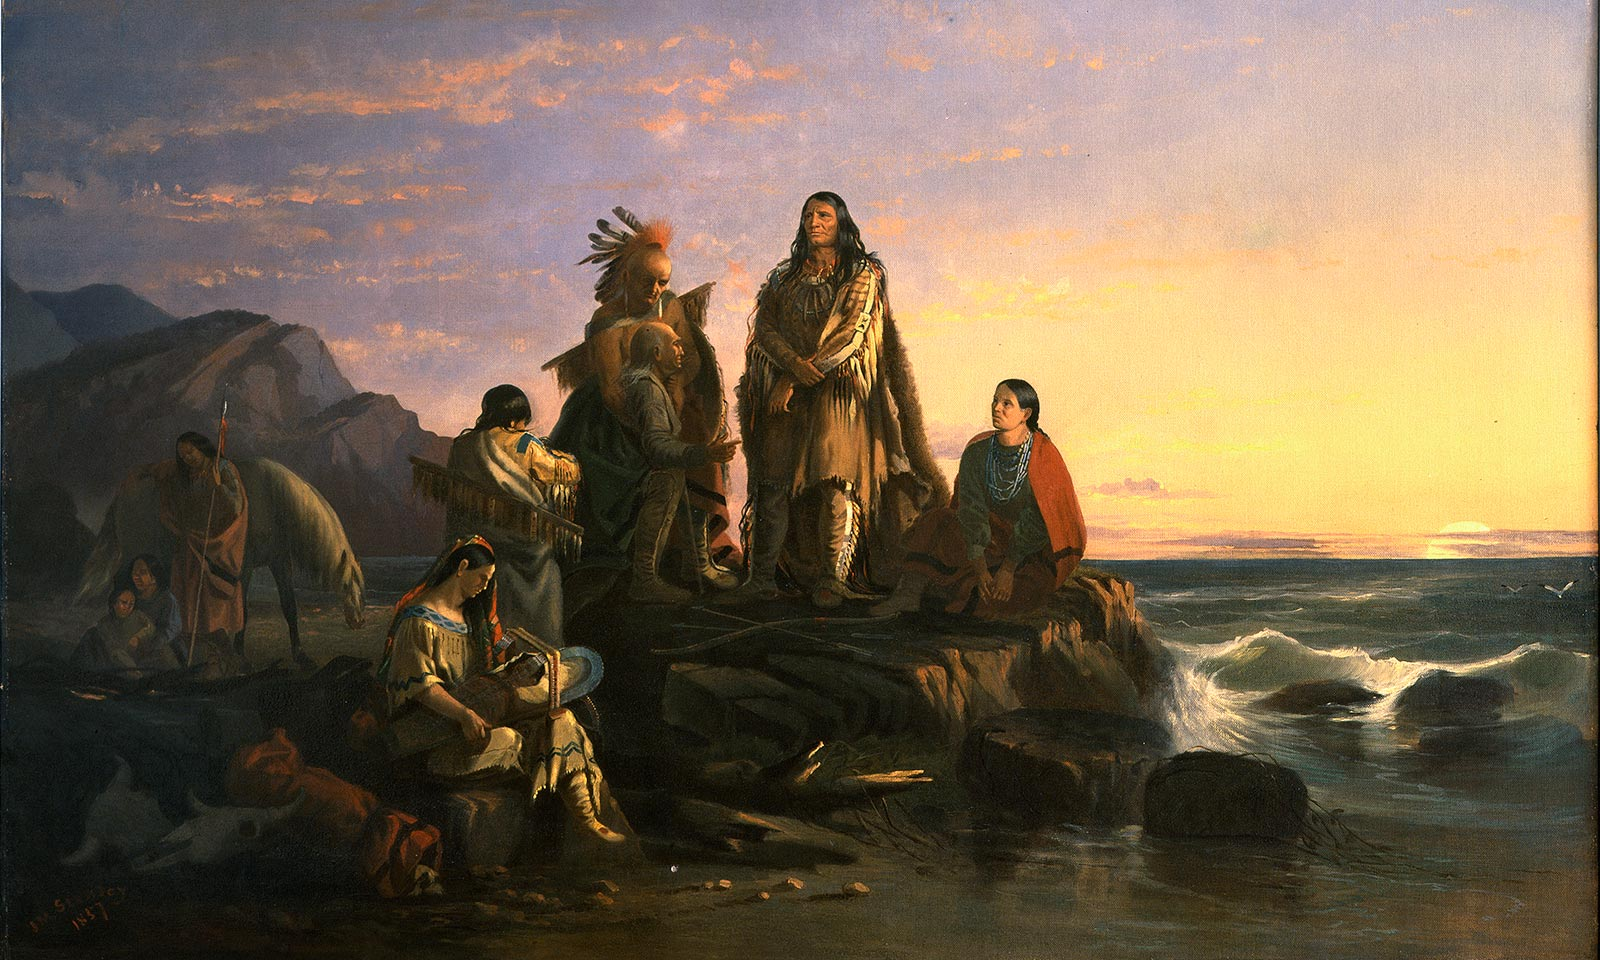 John Mix Stanley (American, 1814–1872), The Last of Their Race, 1857, oil on canvas, 52.125 x 68.5 inches (frame), Buffalo Bill Center of the West, Cody, Wyoming, USA, Museum purchase, 5.75